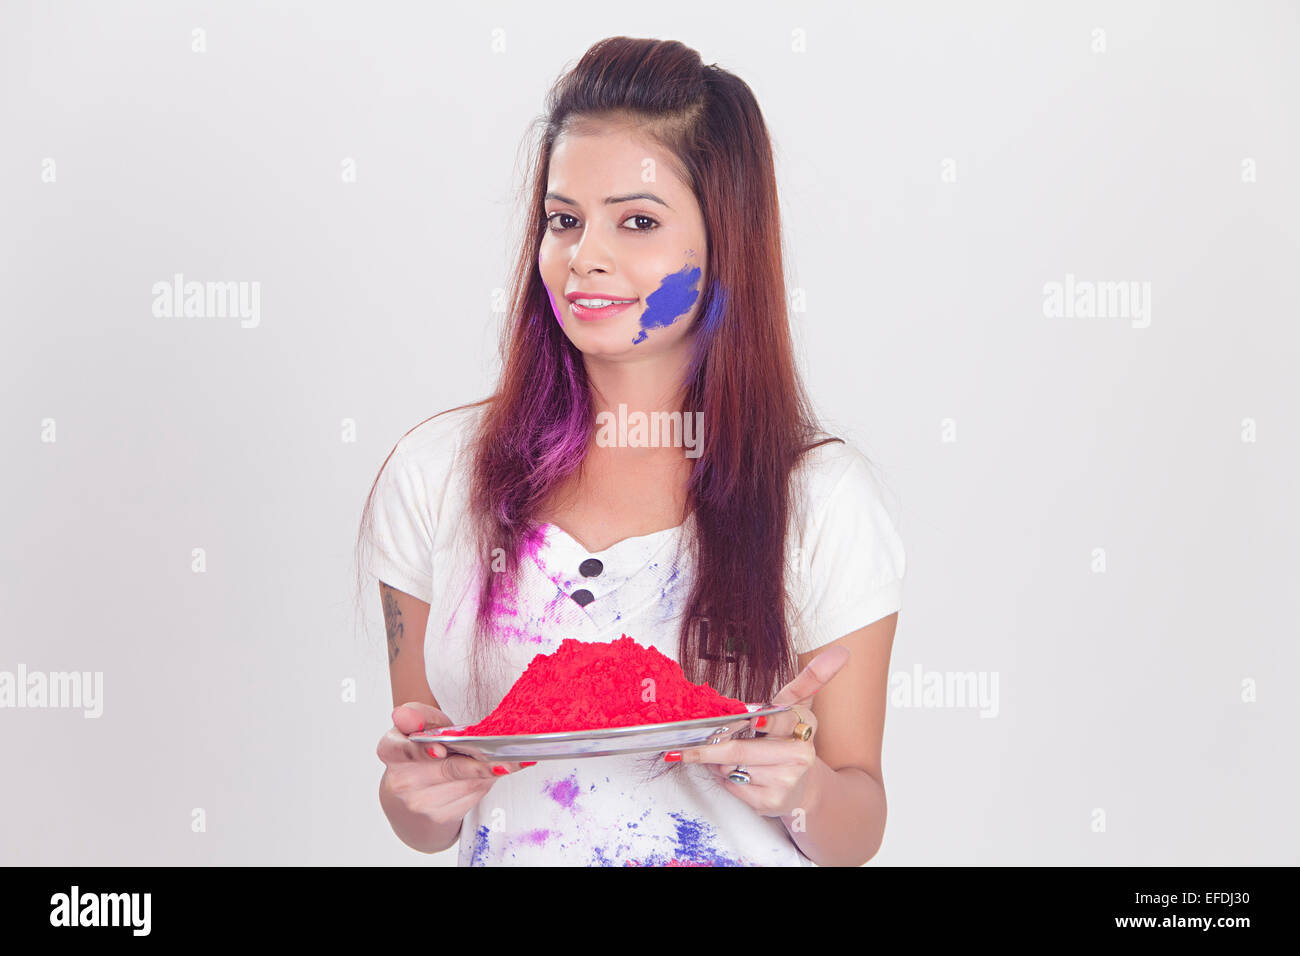 1 Indian Lady Holi Festival Greeting Stock Photo 78360884 Alamy